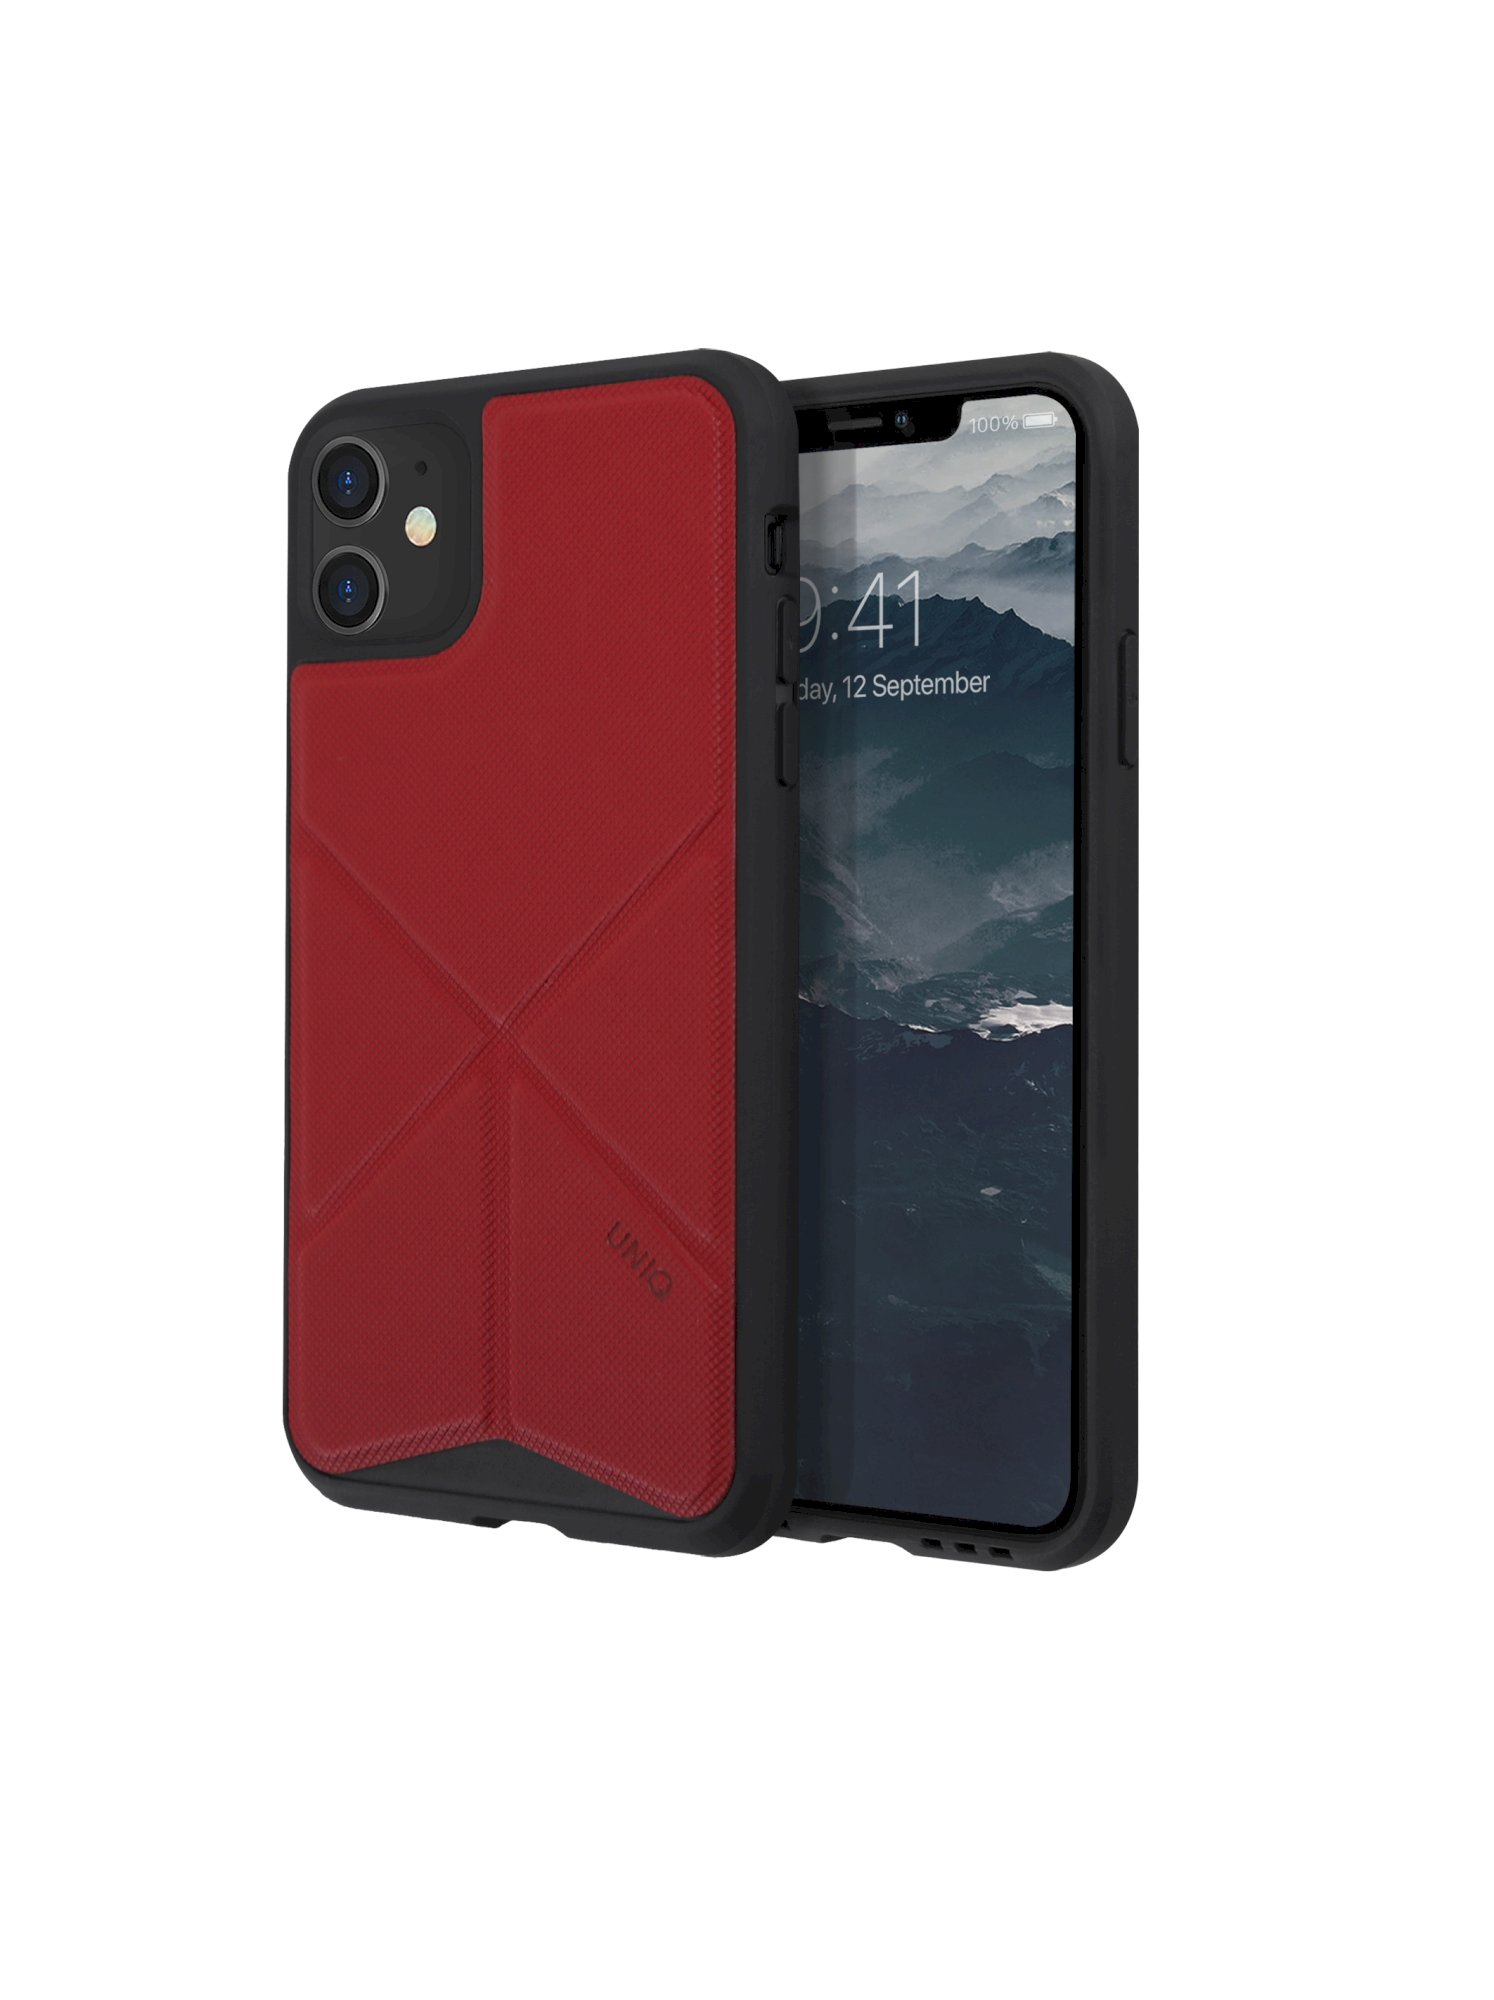 iPhone 11, case transforma, stand up fury racer, red